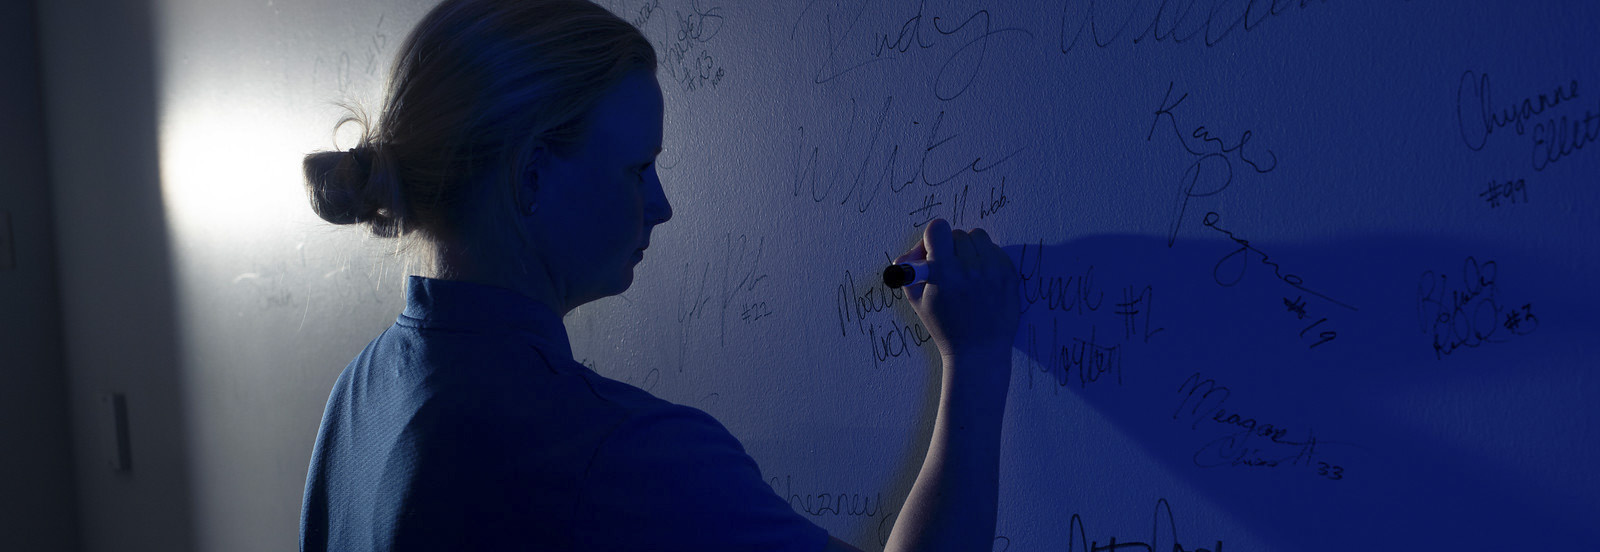 Memphis Tigers Athlete Signs Wall of Fame